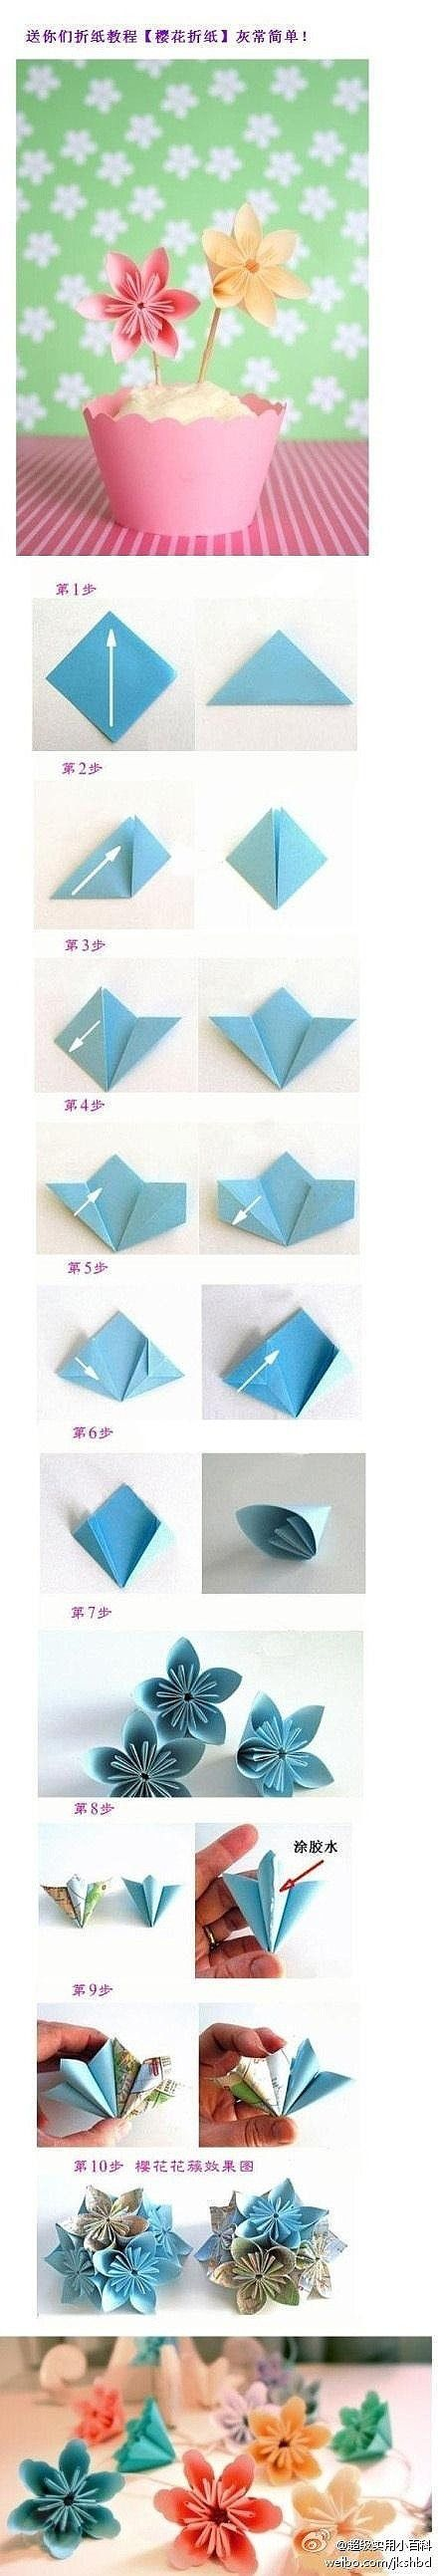 Sakura Folding Instructions Geisha Party Pinterest Flowers